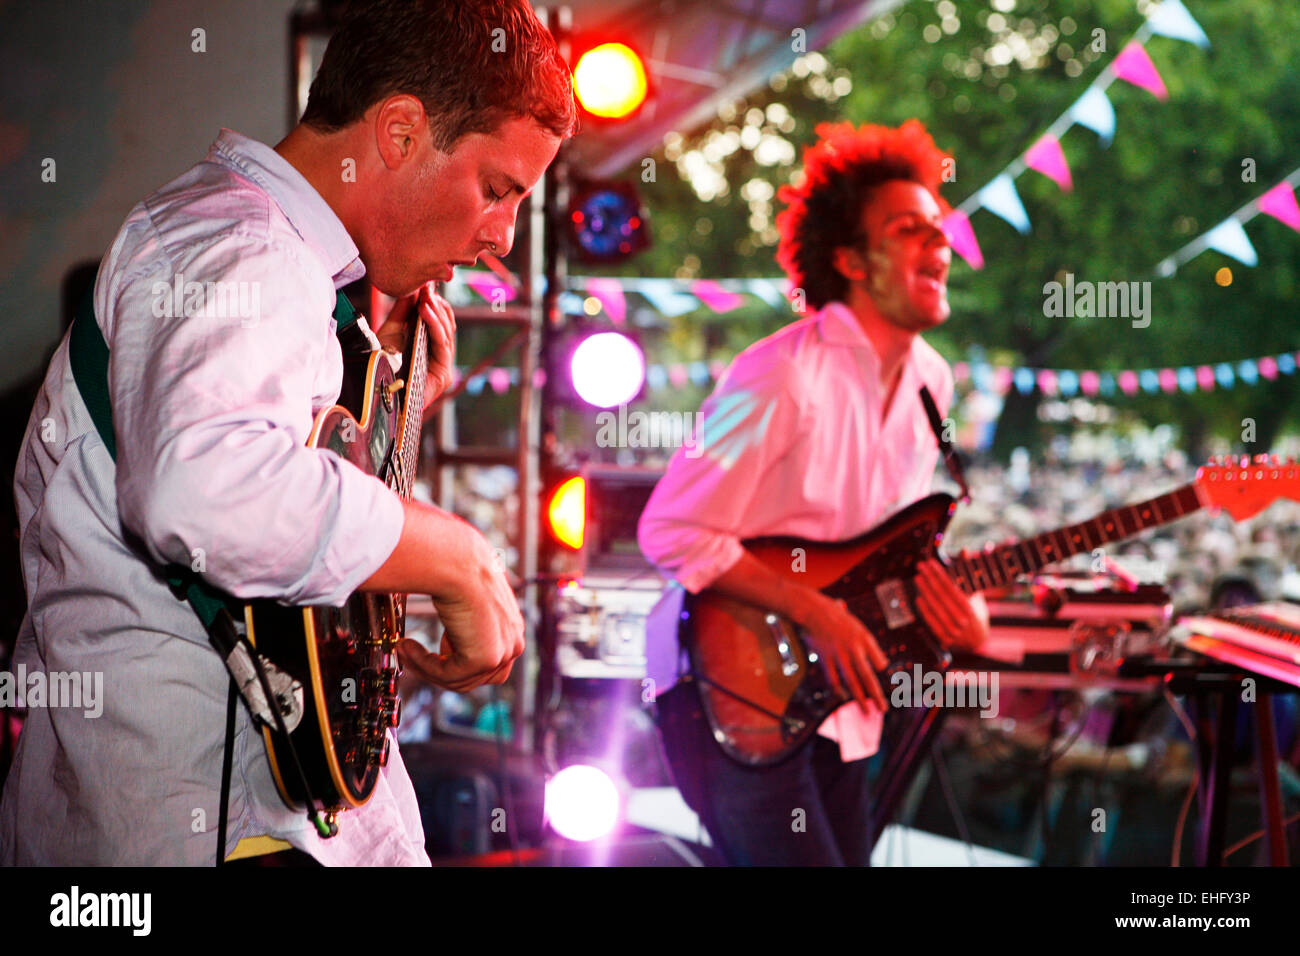 Battles live at Field Day festival in Victoria Park London. - Stock Image